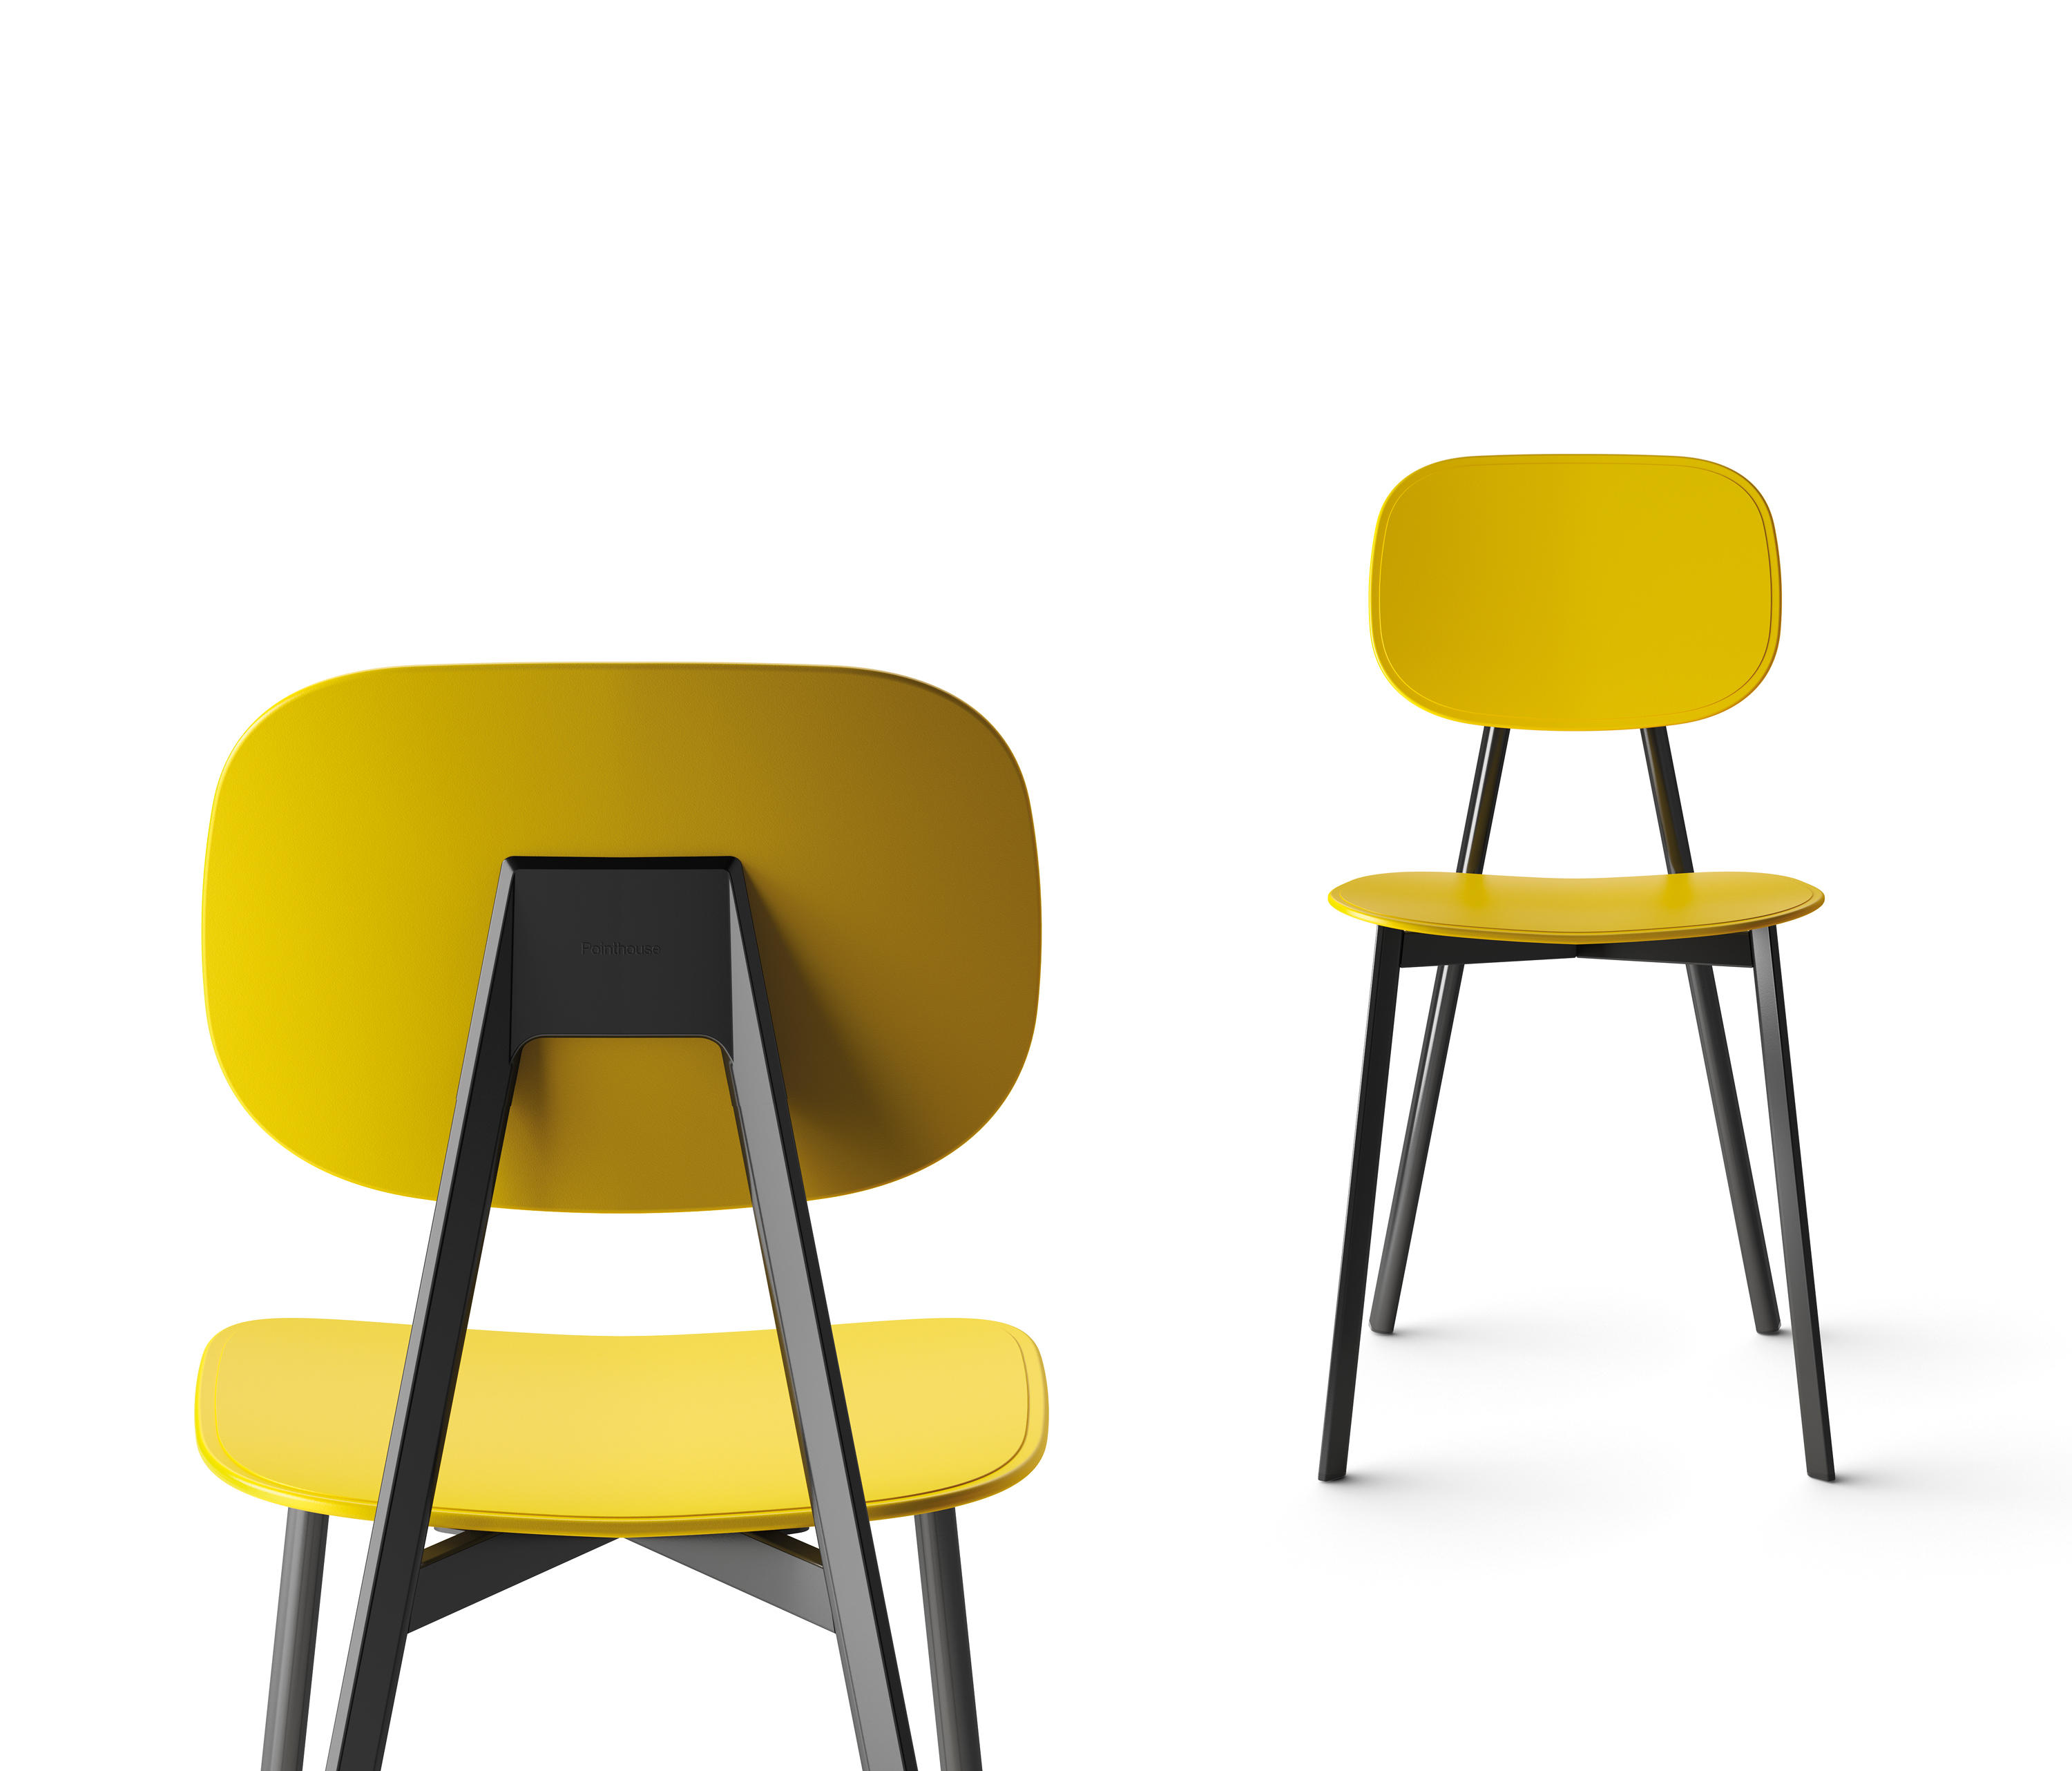 Point House Tavoli E Sedie.Tata Chairs From Pointhouse Architonic